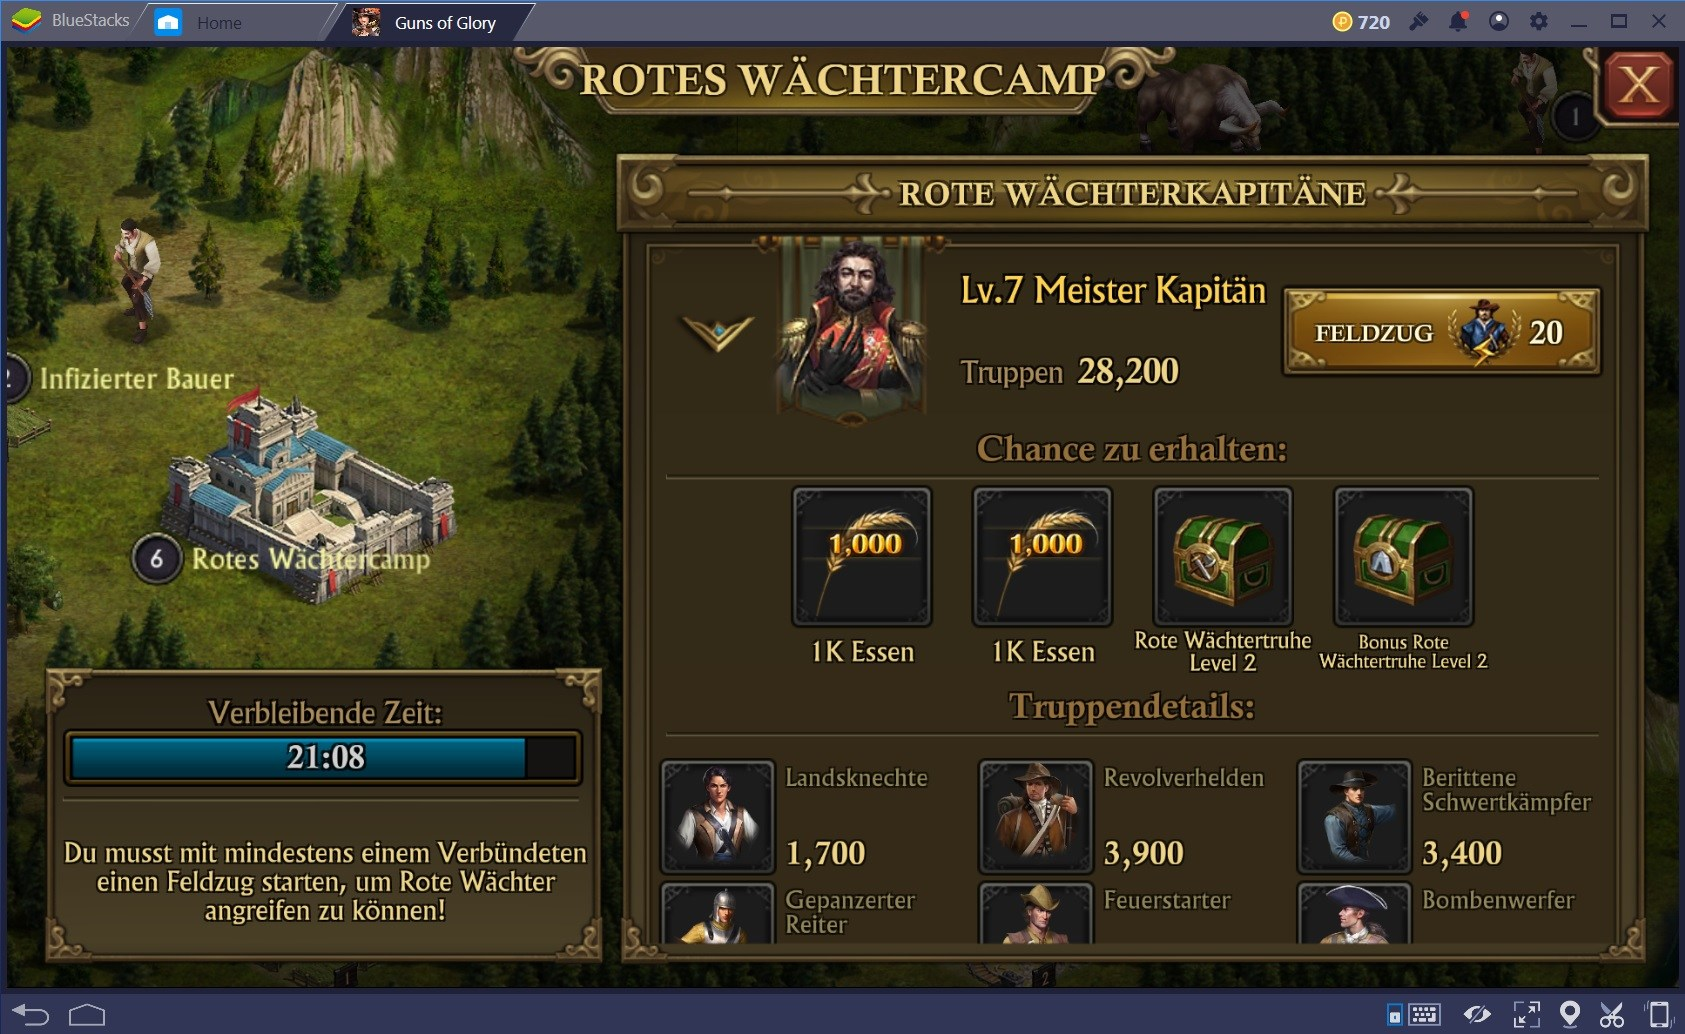 Wie man das rote Wächtercamp in Guns of Glory angreift